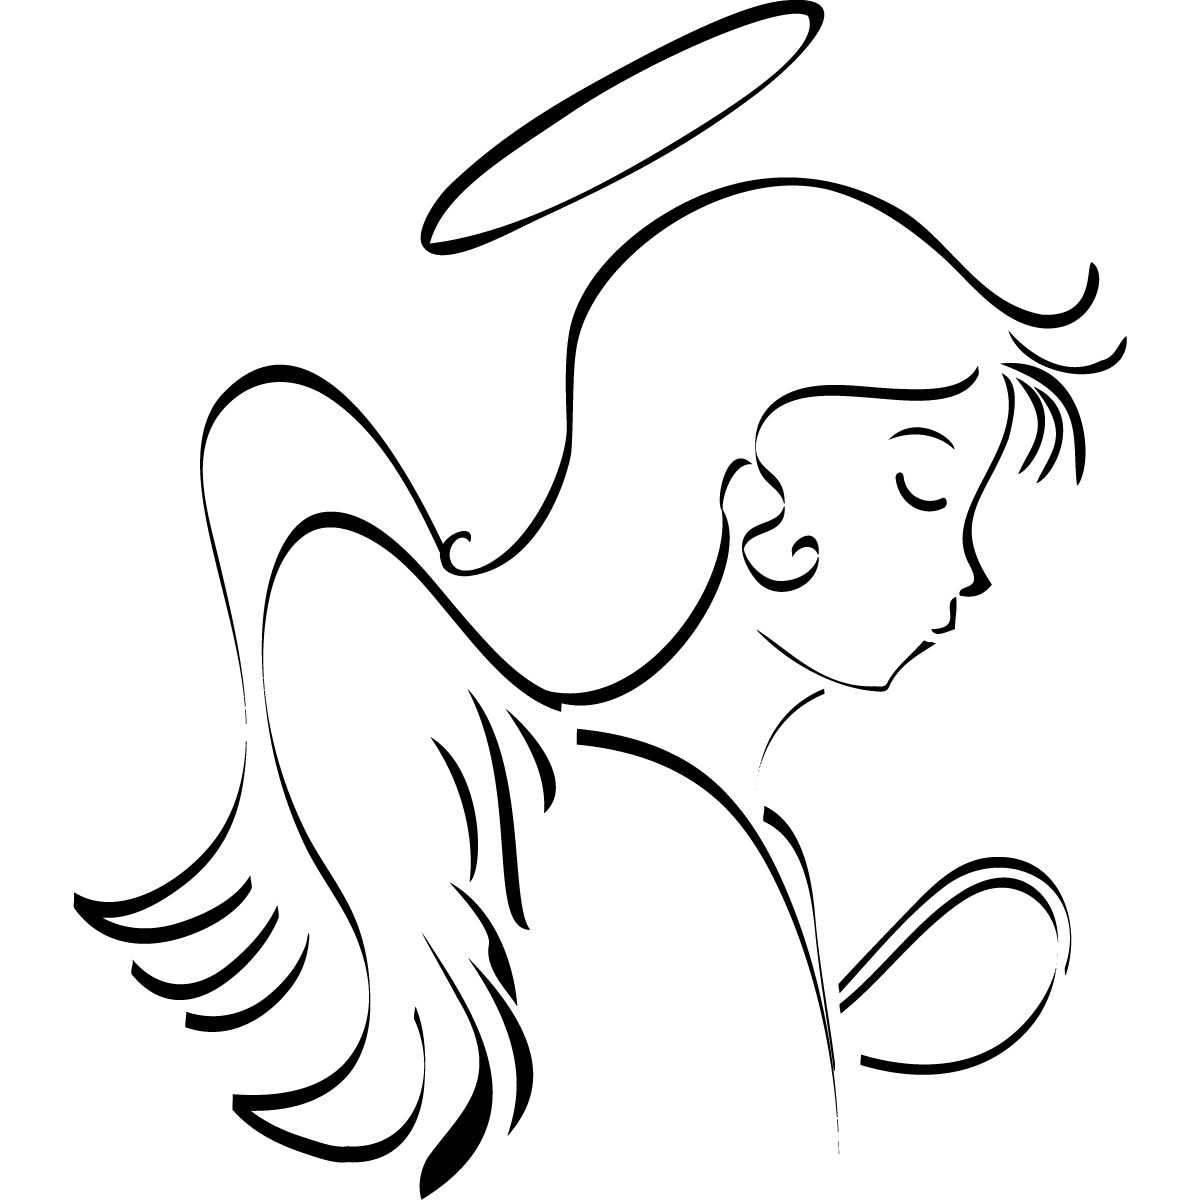 Line Drawing Clip Art : Angel line drawing clipart best